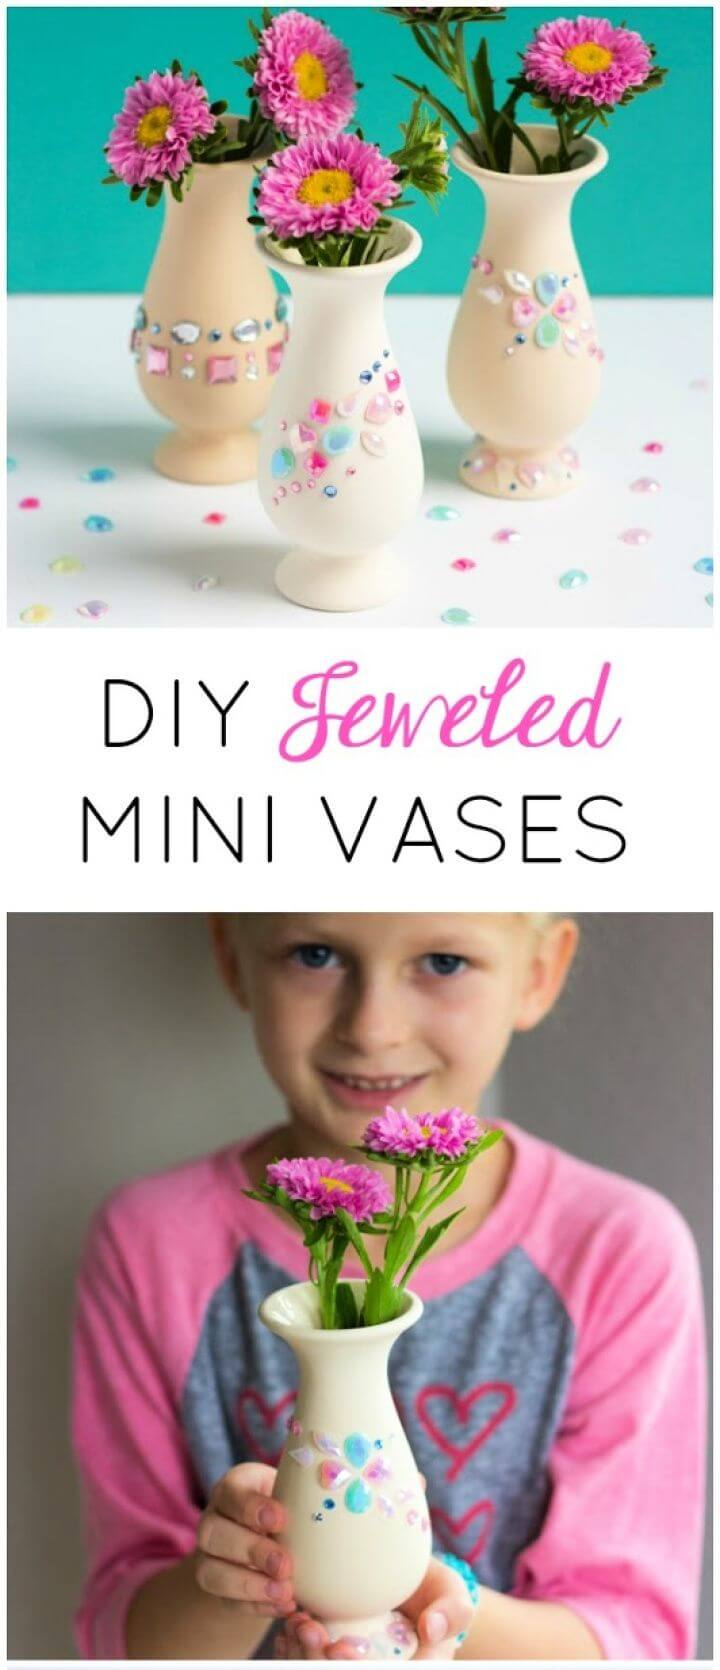 Build A DIY Jewel Covered Mini Vases